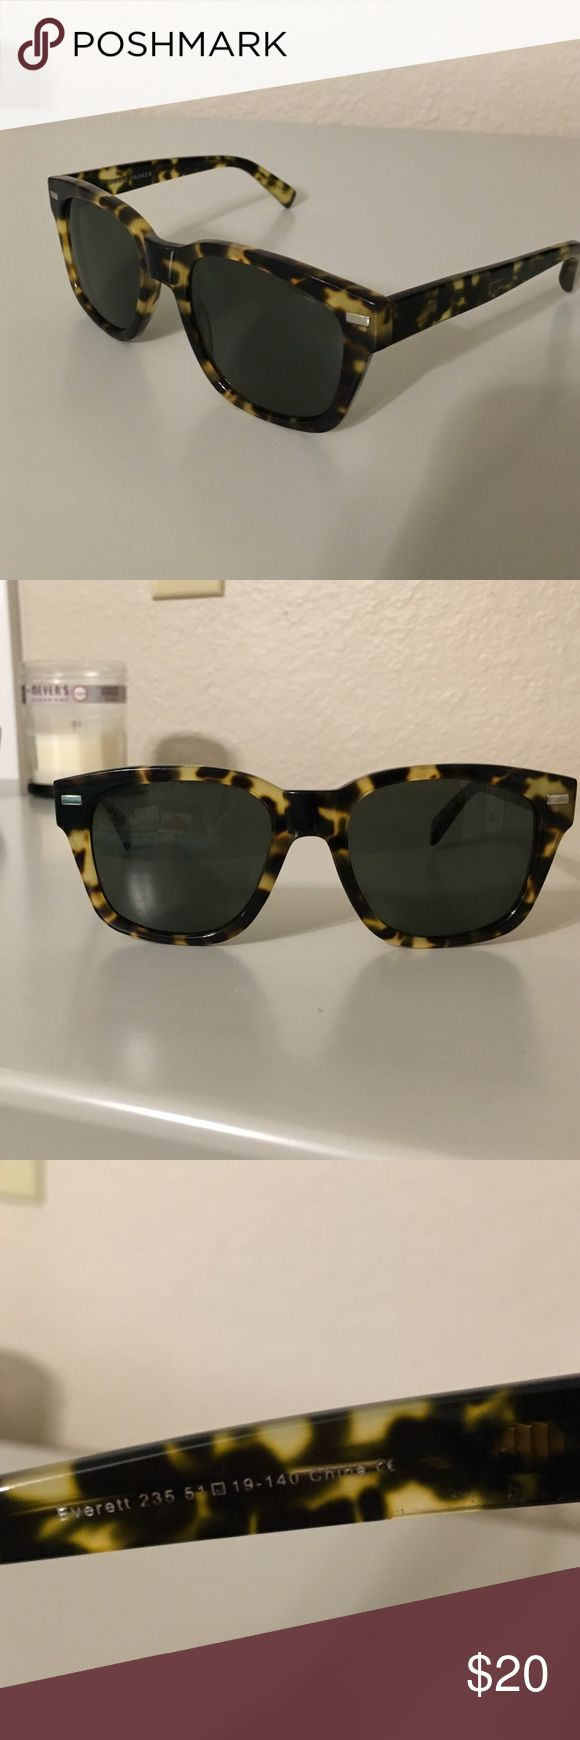 Warby Parker Rx sunglasses 😎 Warby Parker Rx sunglasses 😎 in Everett. They have my Rx in them but you should be able to bring them to any WP store or a place that sells eyeglasses to put new lenses in. I think Warby does it for $50 but other places may be cheaper Warby Parker Accessories Sunglasses